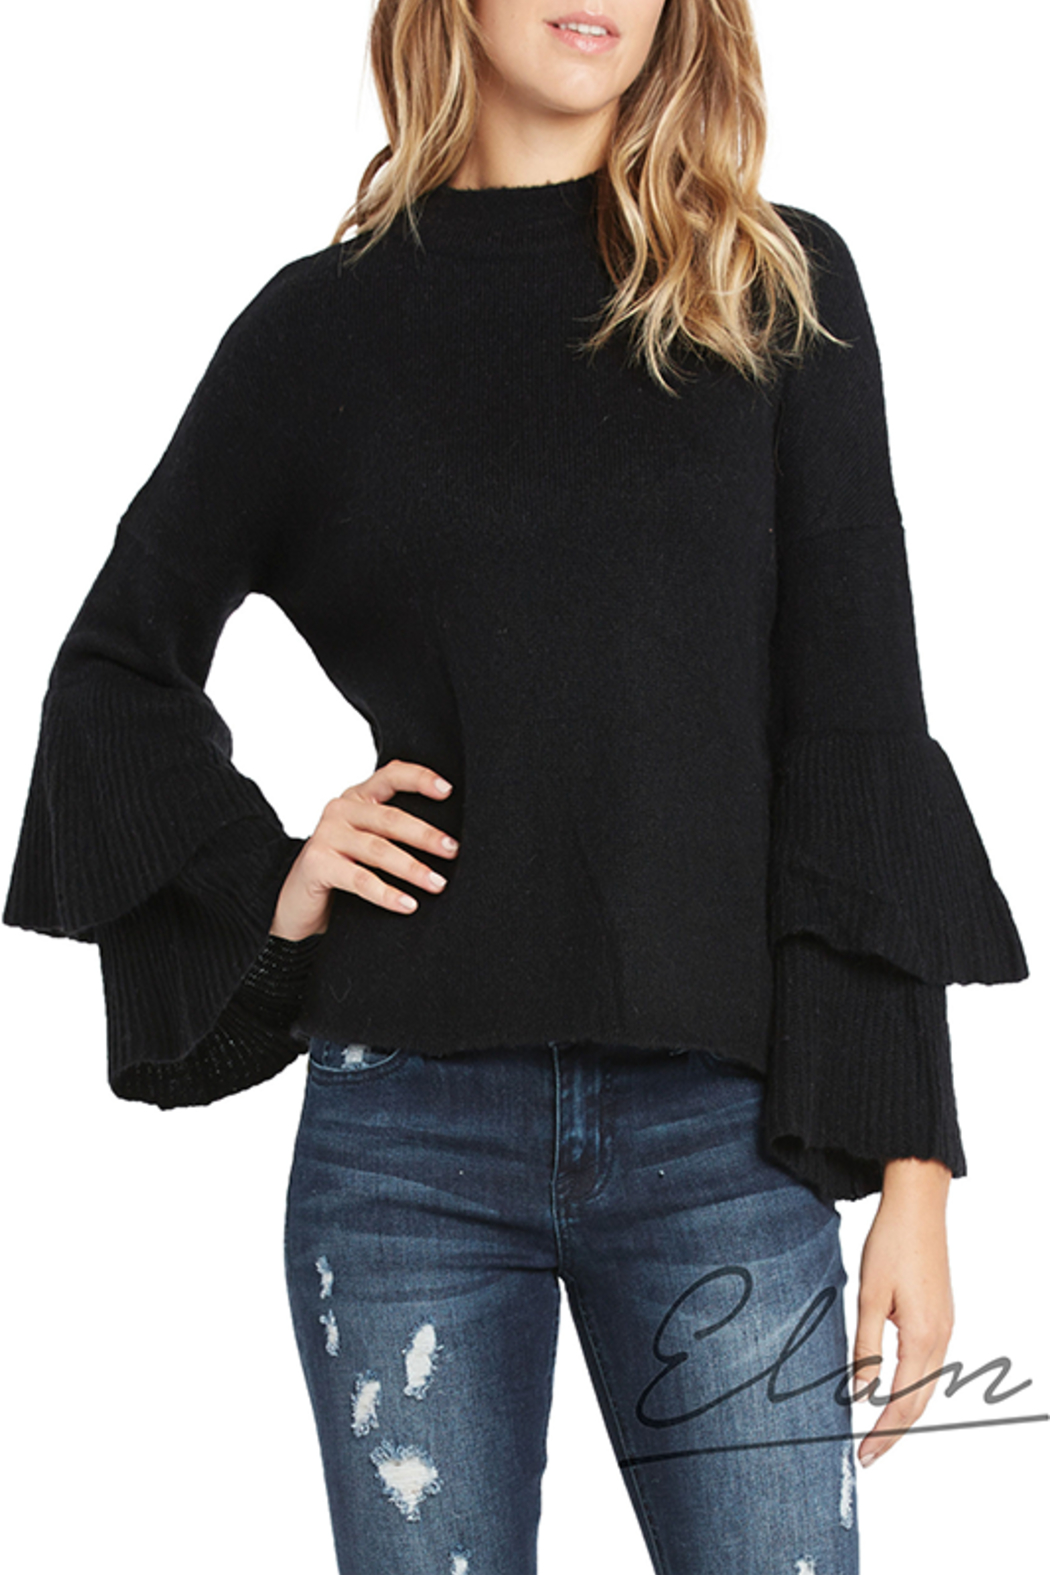 Elan Hi-Neck Ruffle Sleeve Sweater - Main Image